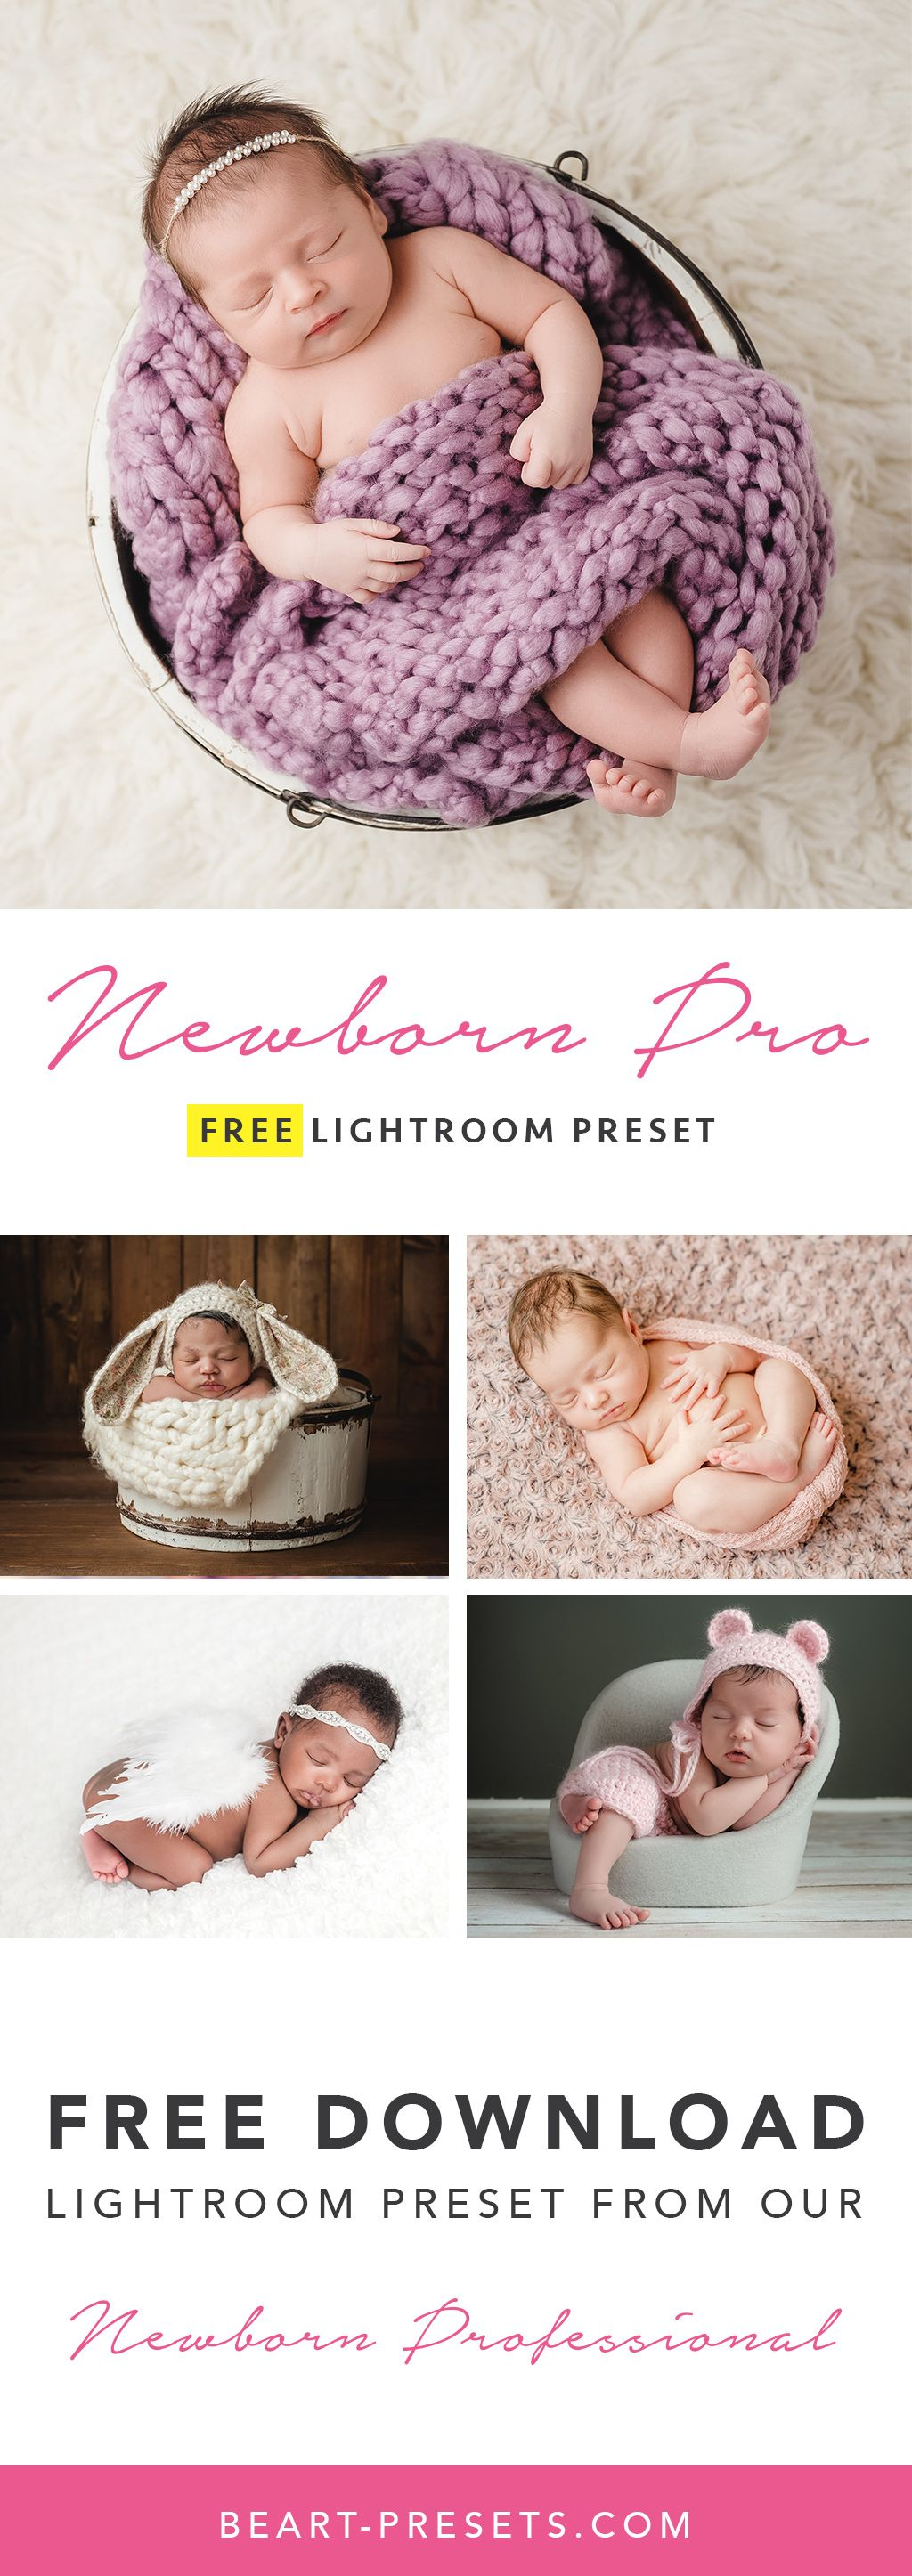 Free newborn baby photography lightroom preset for photographers from our premium collection limited time offer